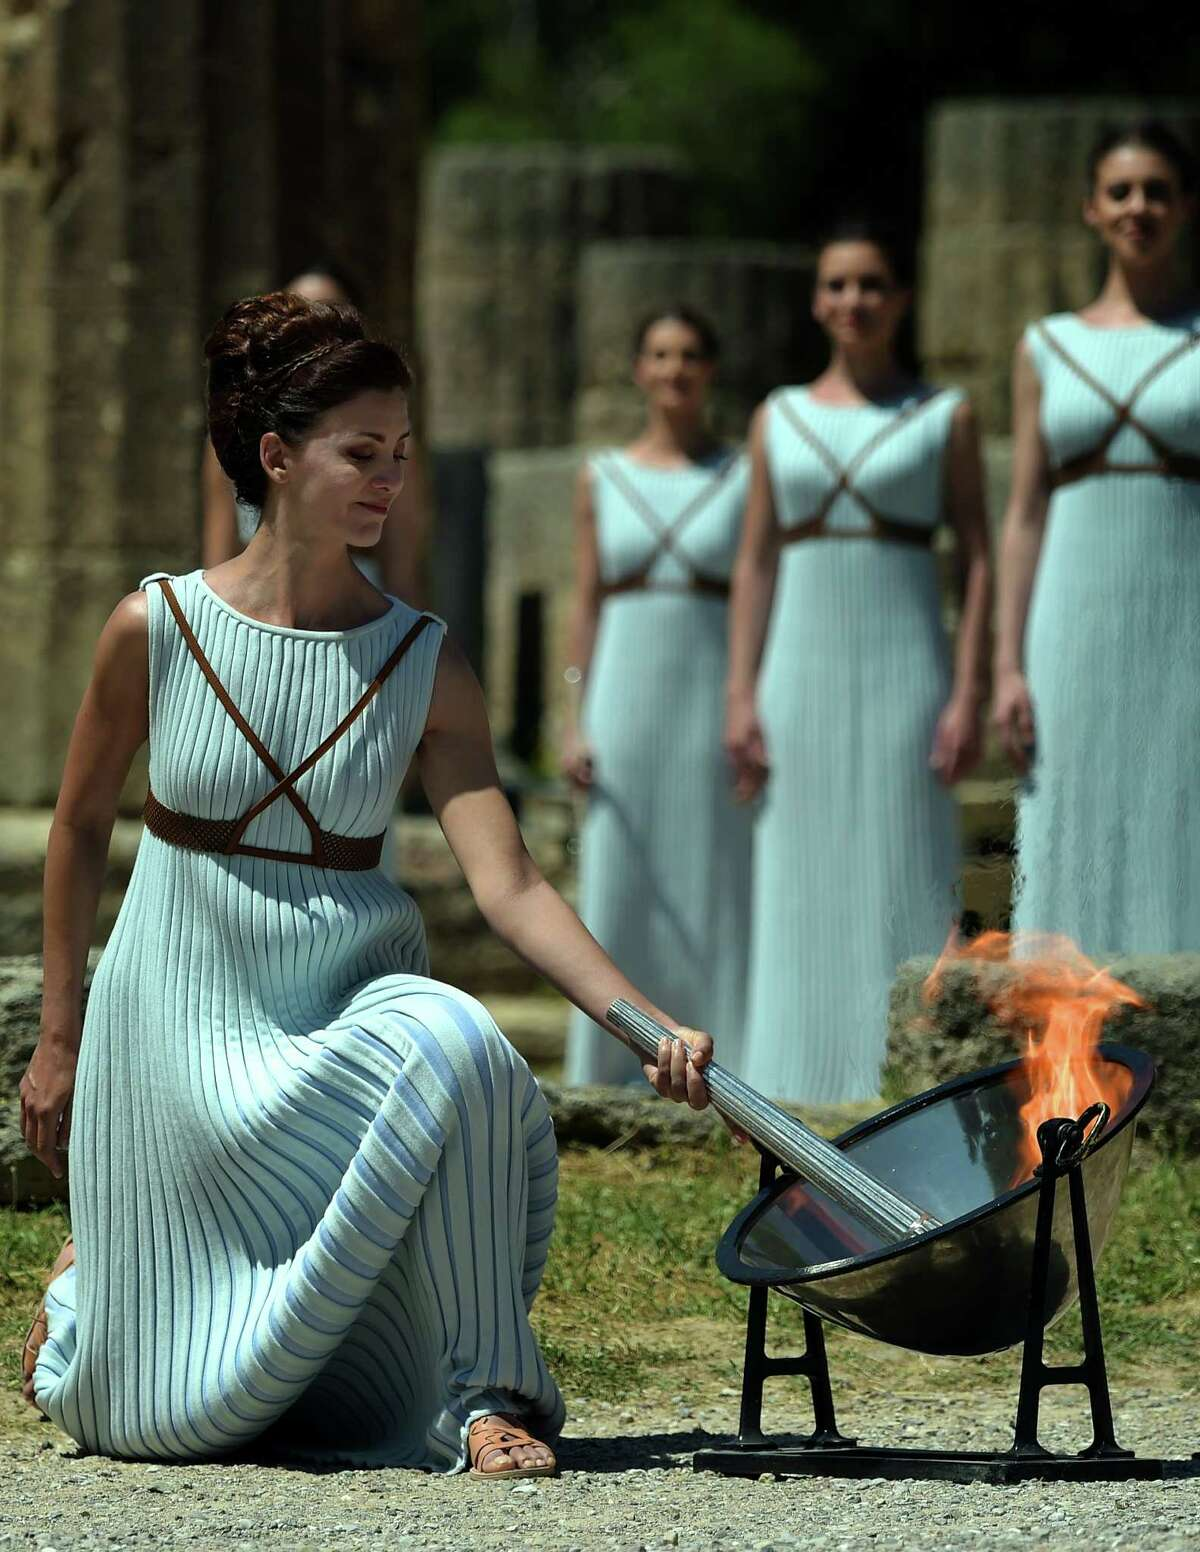 Actress Katerina Lechou acting the high pristess lights the Olympic flame at the Temple of Hera on April 21, 2016 during the lighting ceremony of the Olympic flame in ancient Olympia, the sanctuary where the Olympic Games were born in 776 BC. The Olympic flame was lit Thursday in an ancient temple in one country in crisis and solemnly sent off carrying international hopes that Brazil's political paralysis will not taint the Rio Games that start in barely 100 days. / AFP PHOTO / ARIS MESSINISARIS MESSINIS/AFP/Getty Images